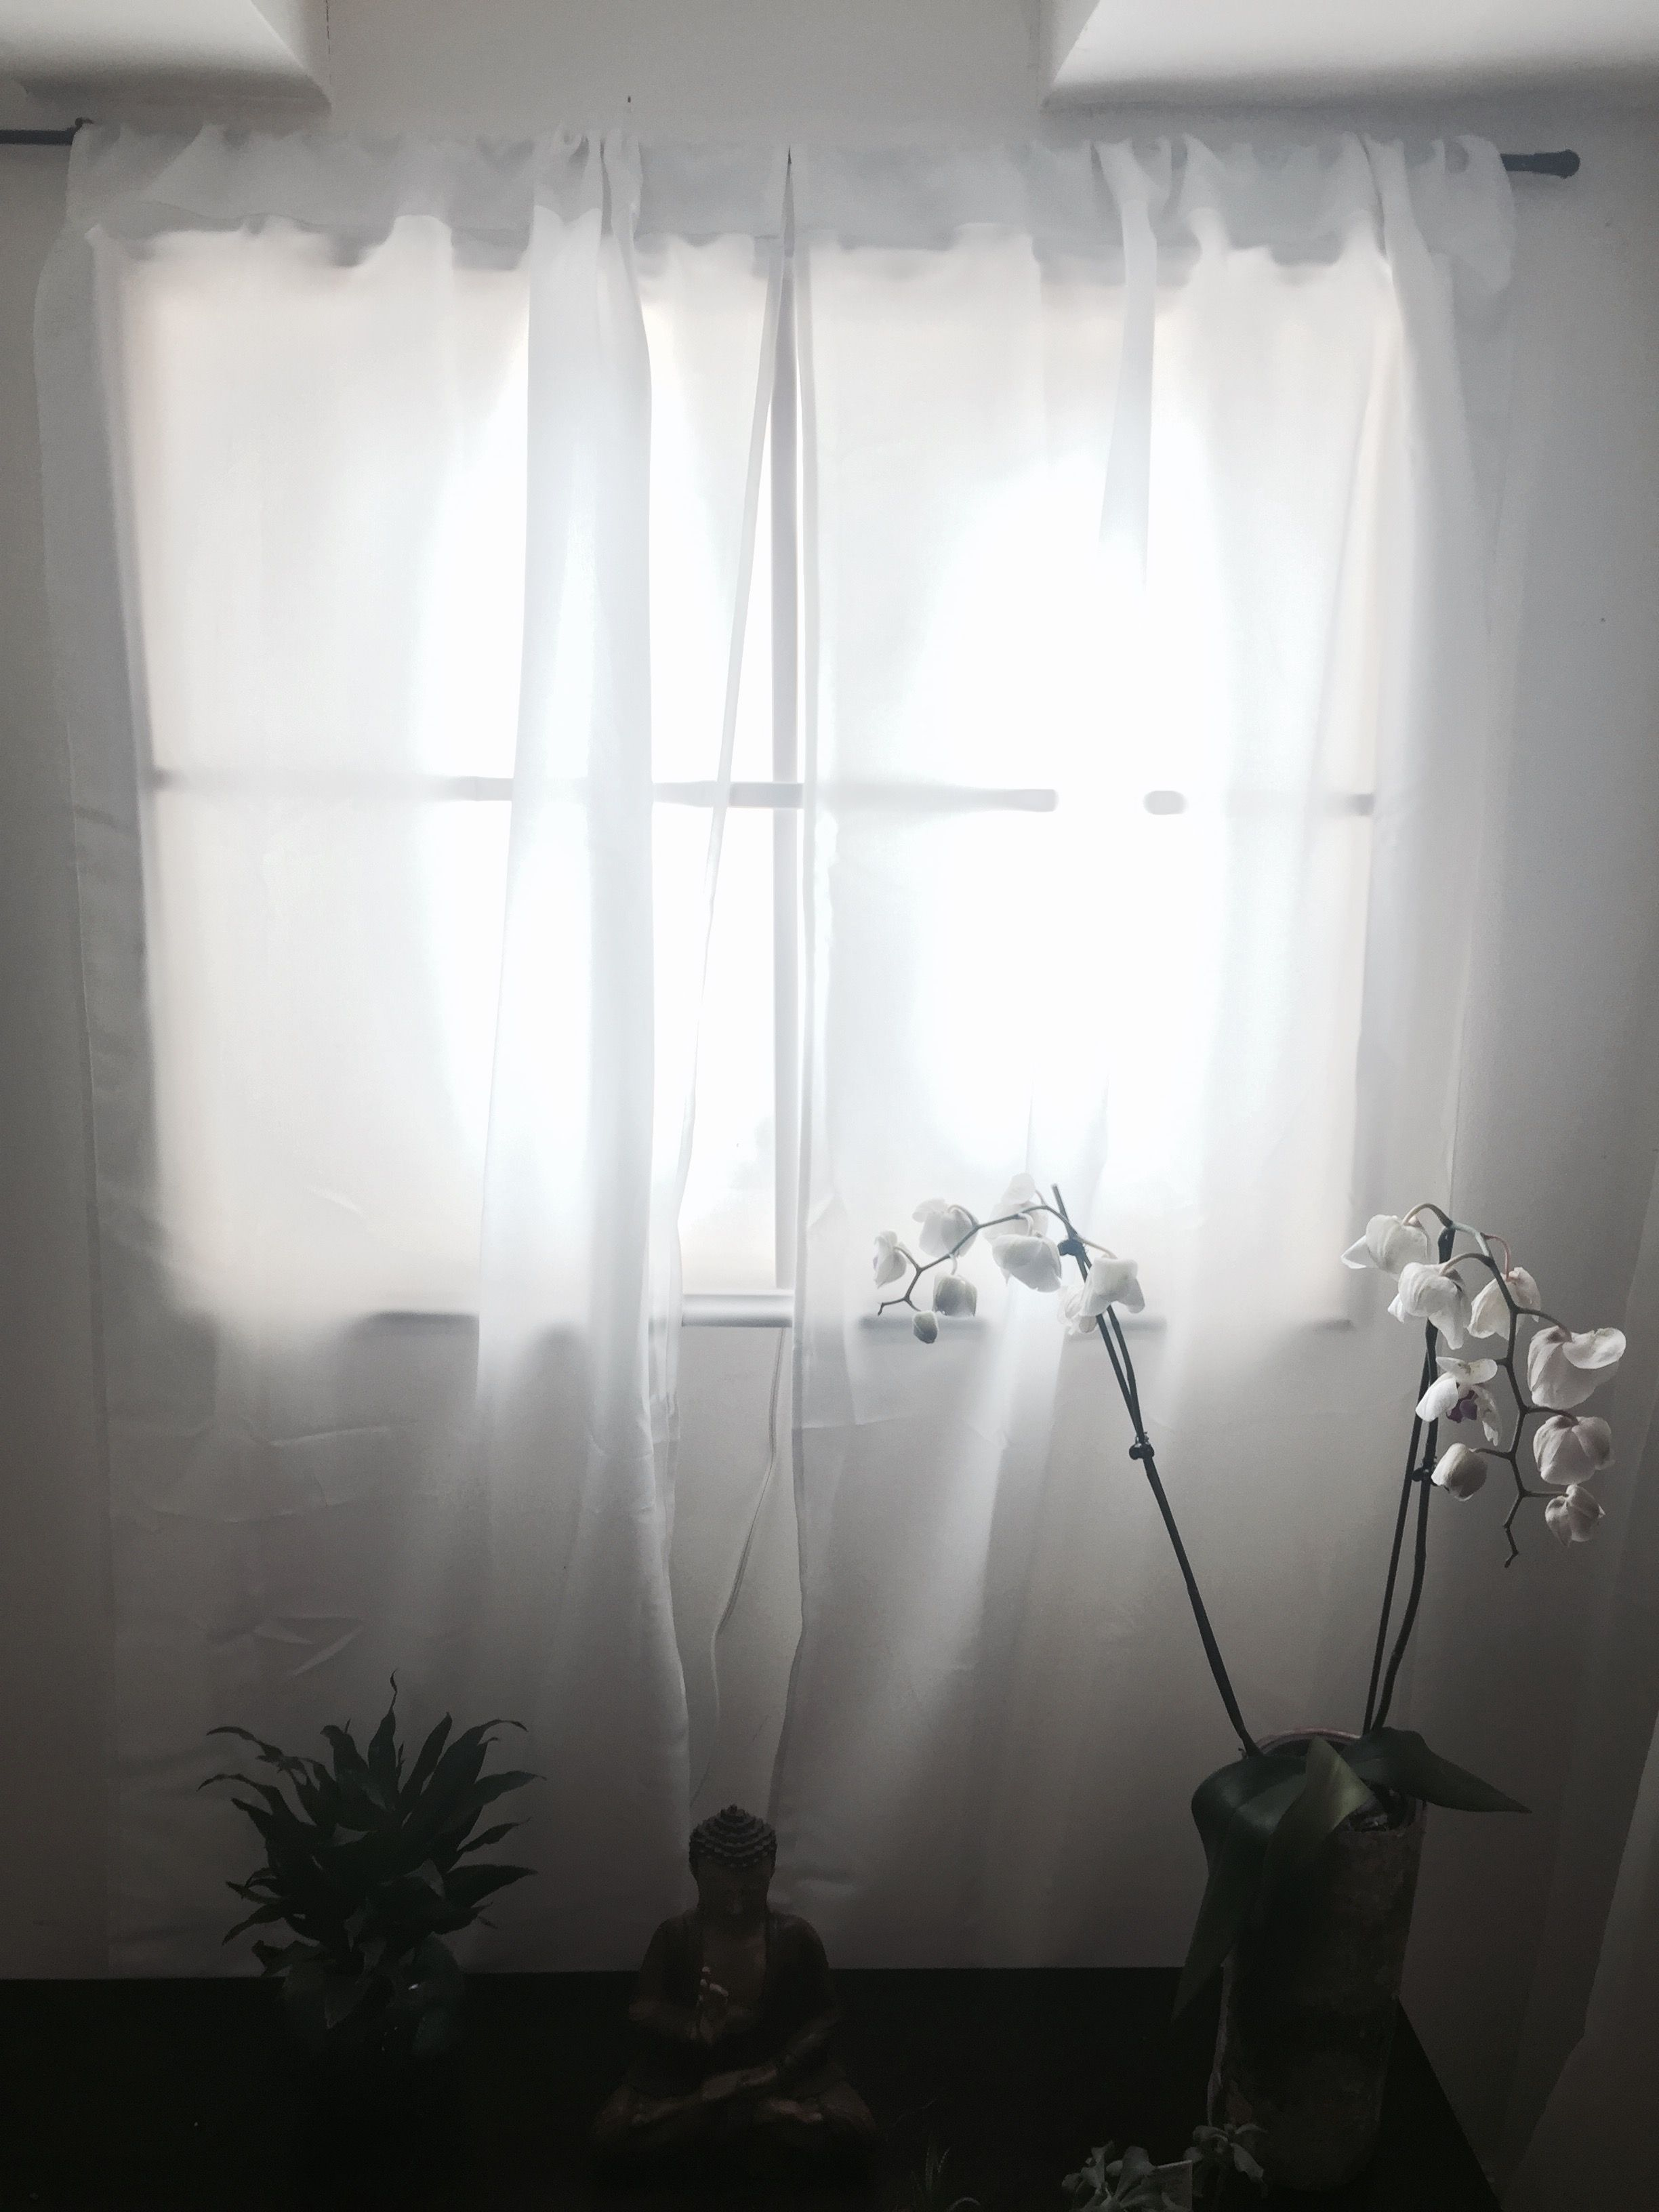 Fake window in our basement with led plant grow lights album on imgur